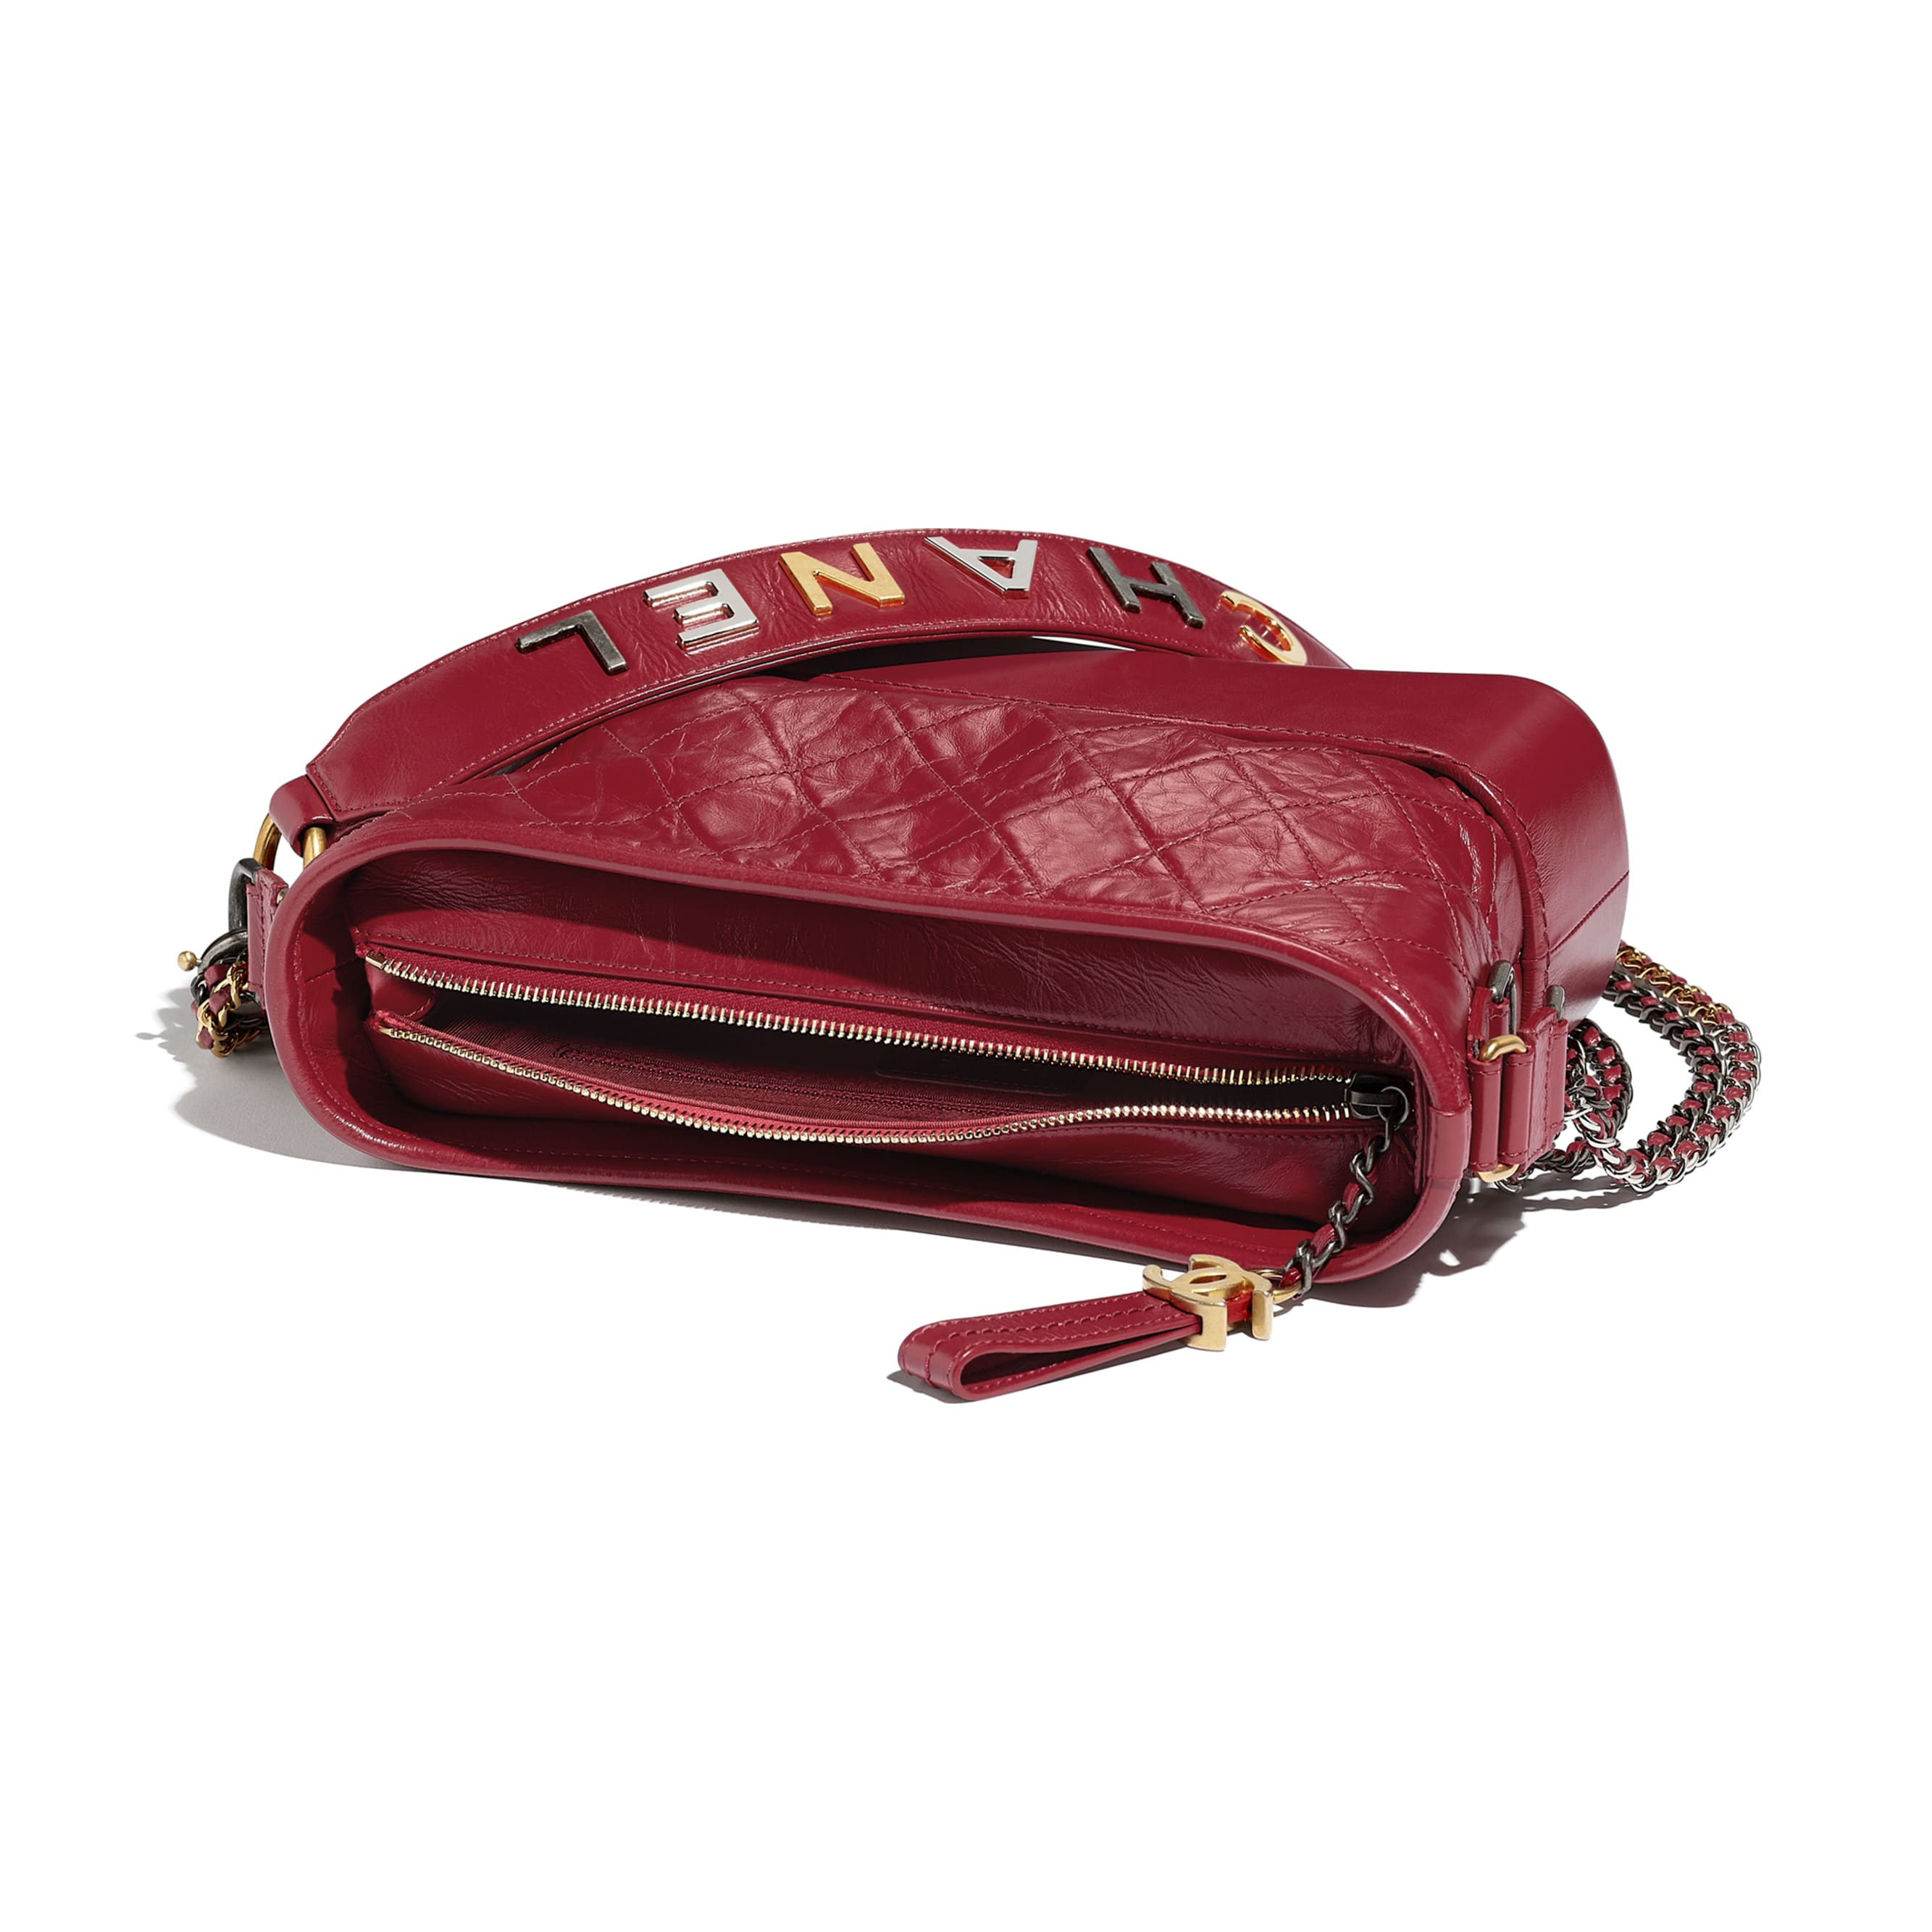 CHANEL'S GABRIELLE Hobo Bag - Red - Aged Calfskin, Smooth Calfskin, Gold-Tone & Silver-Tone Metal - CHANEL - Other view - see standard sized version